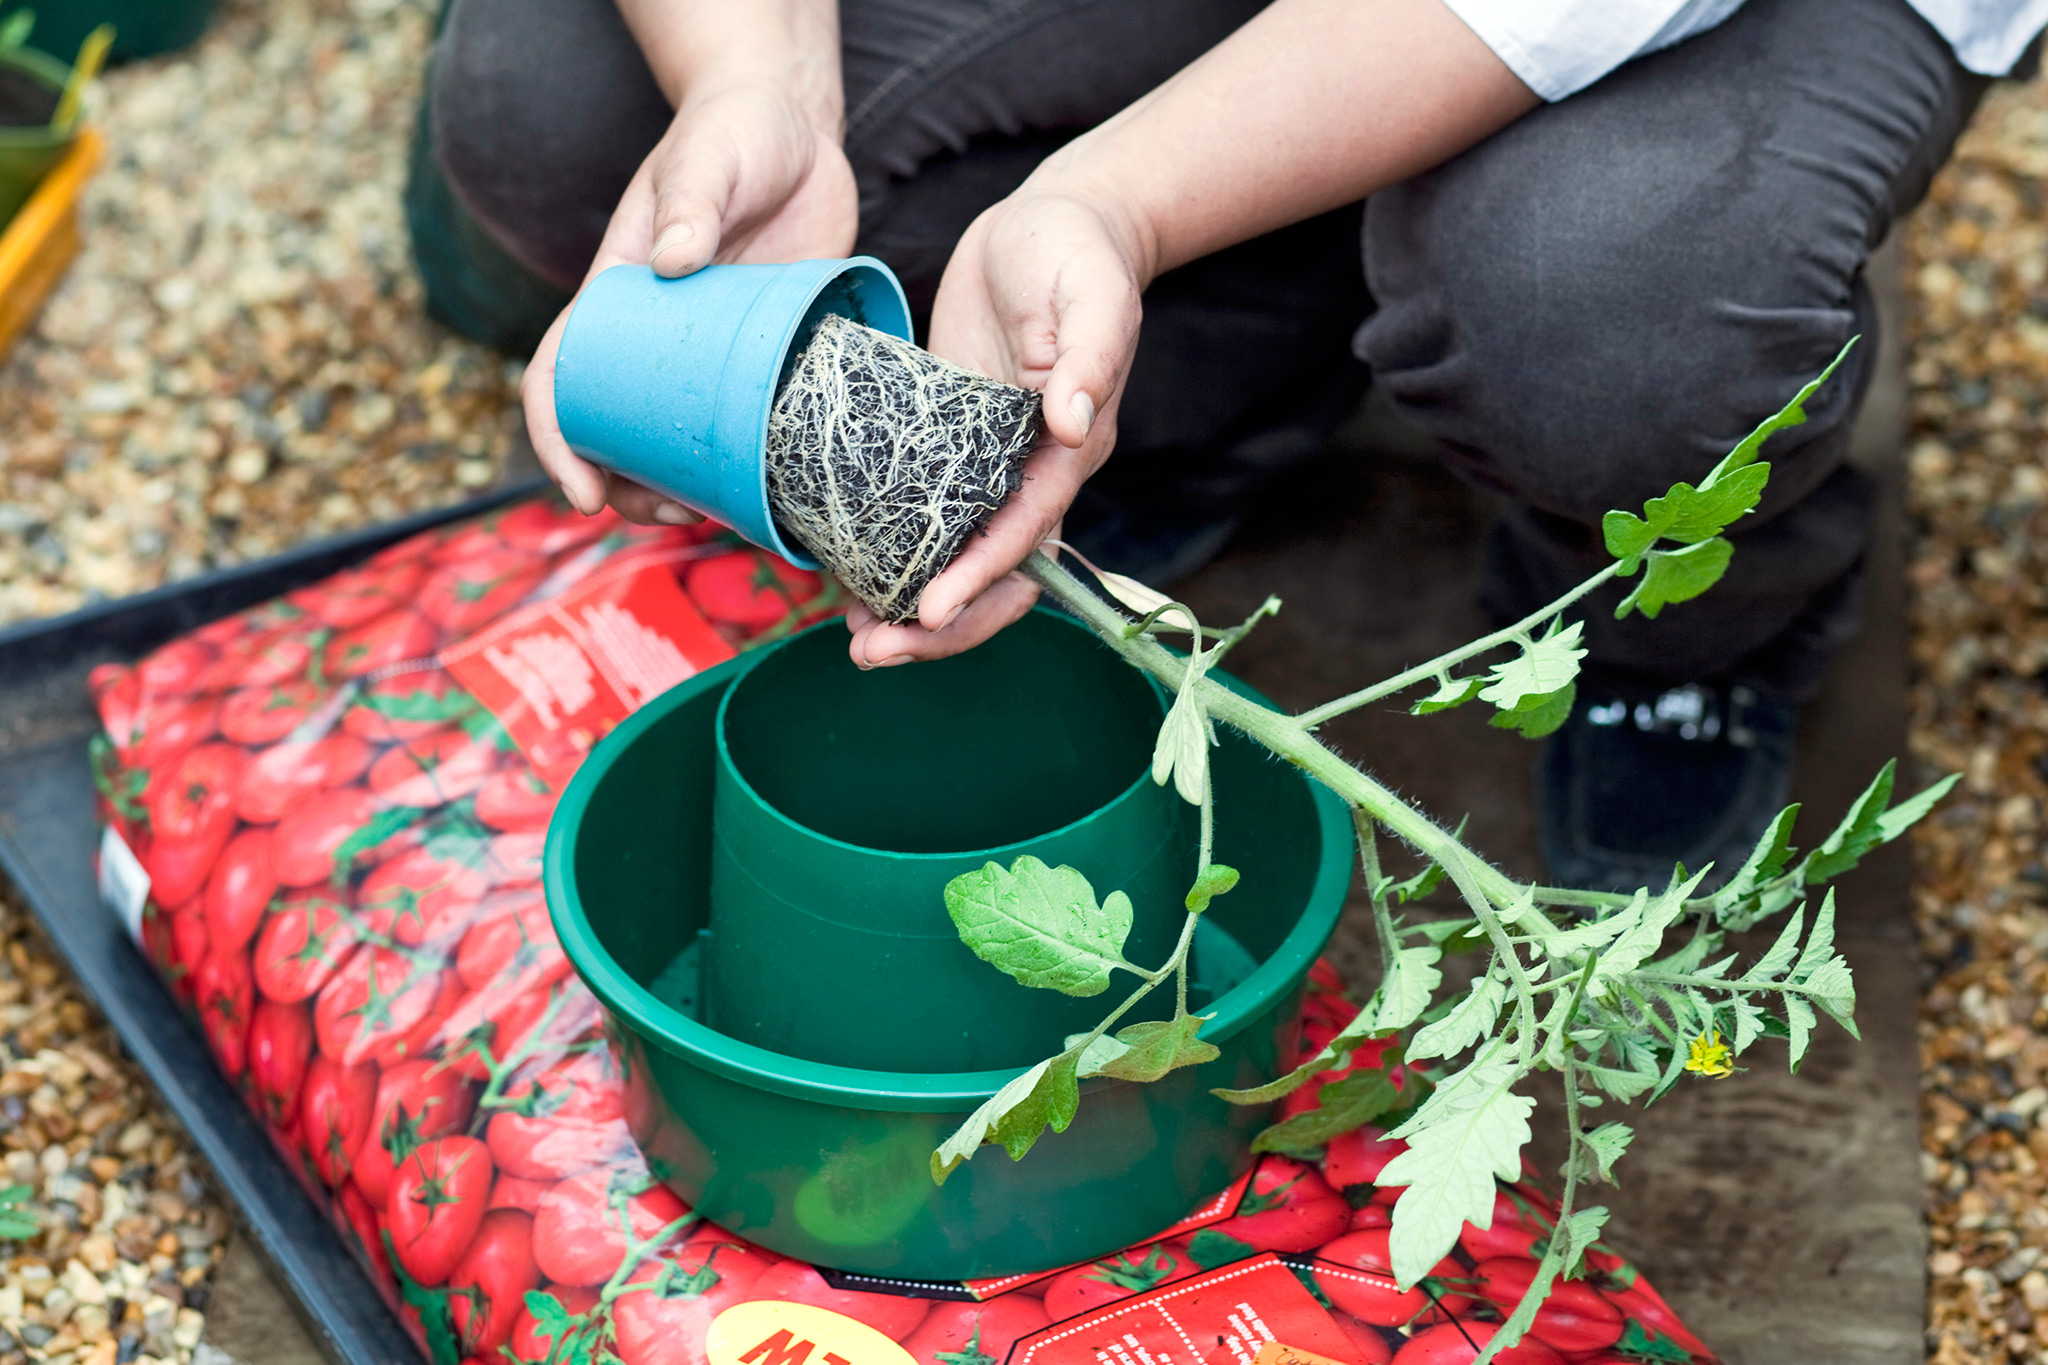 planting-a-tomato-plant-into-a-growing-ring-2